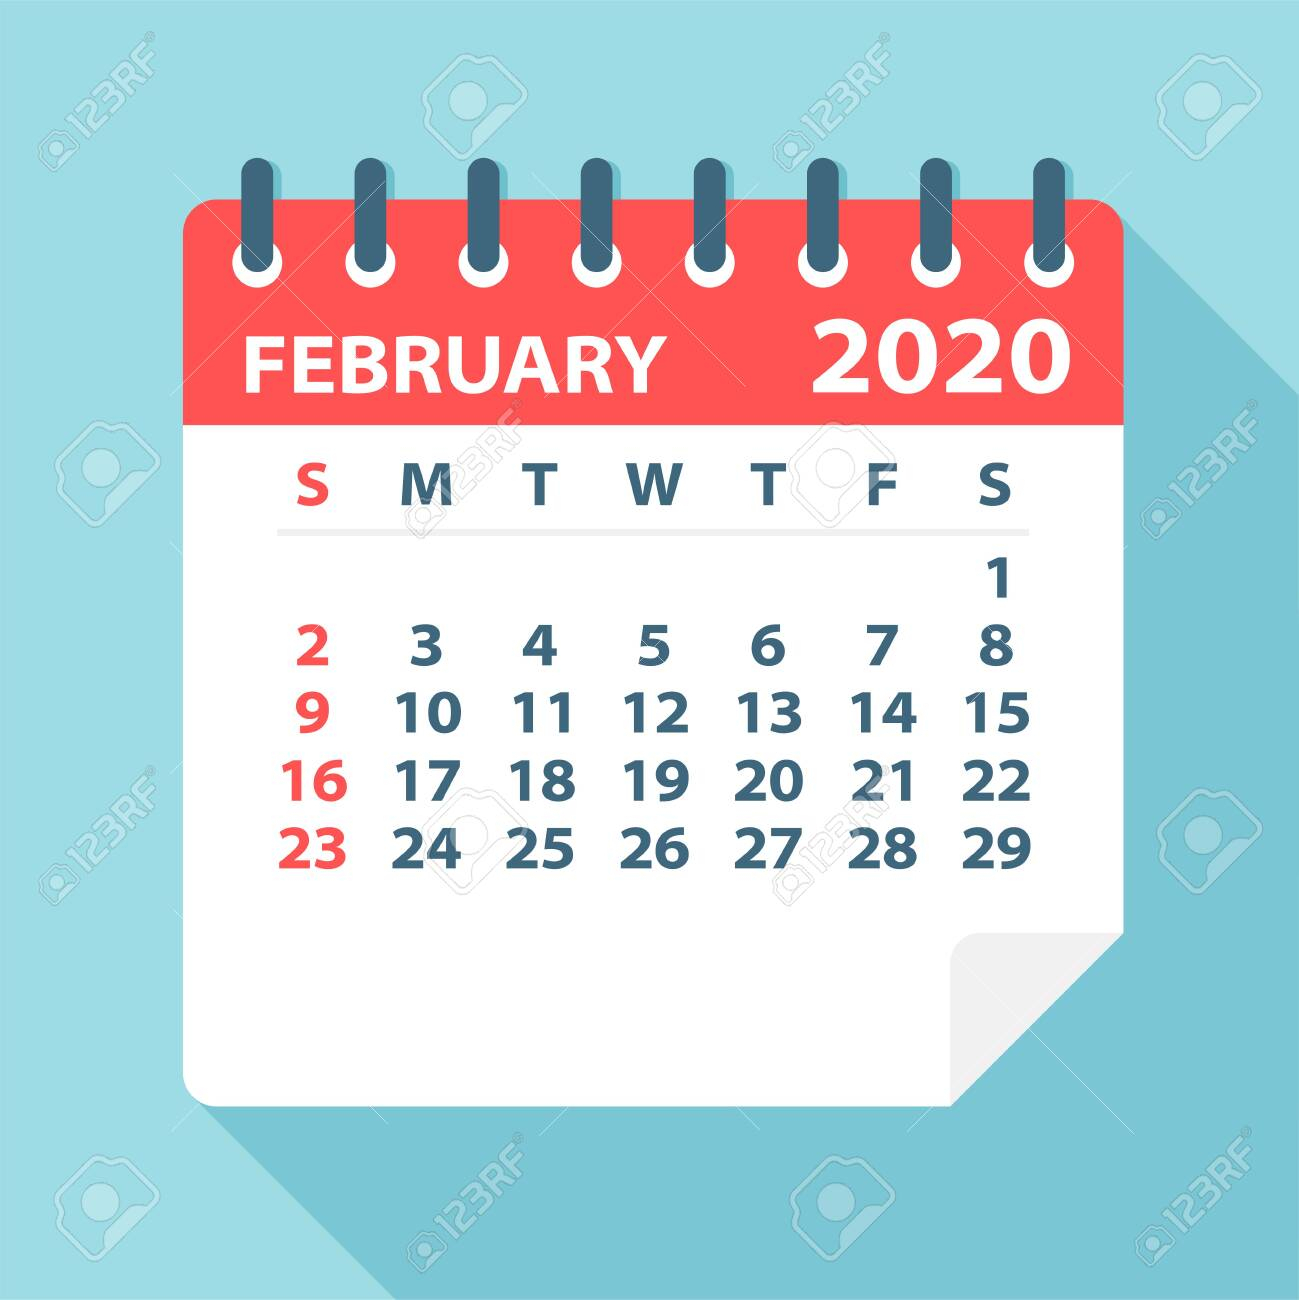 Feb Calendar 2020  Steas.celikdemirsan throughout Calendars Michel Zbinden 2020